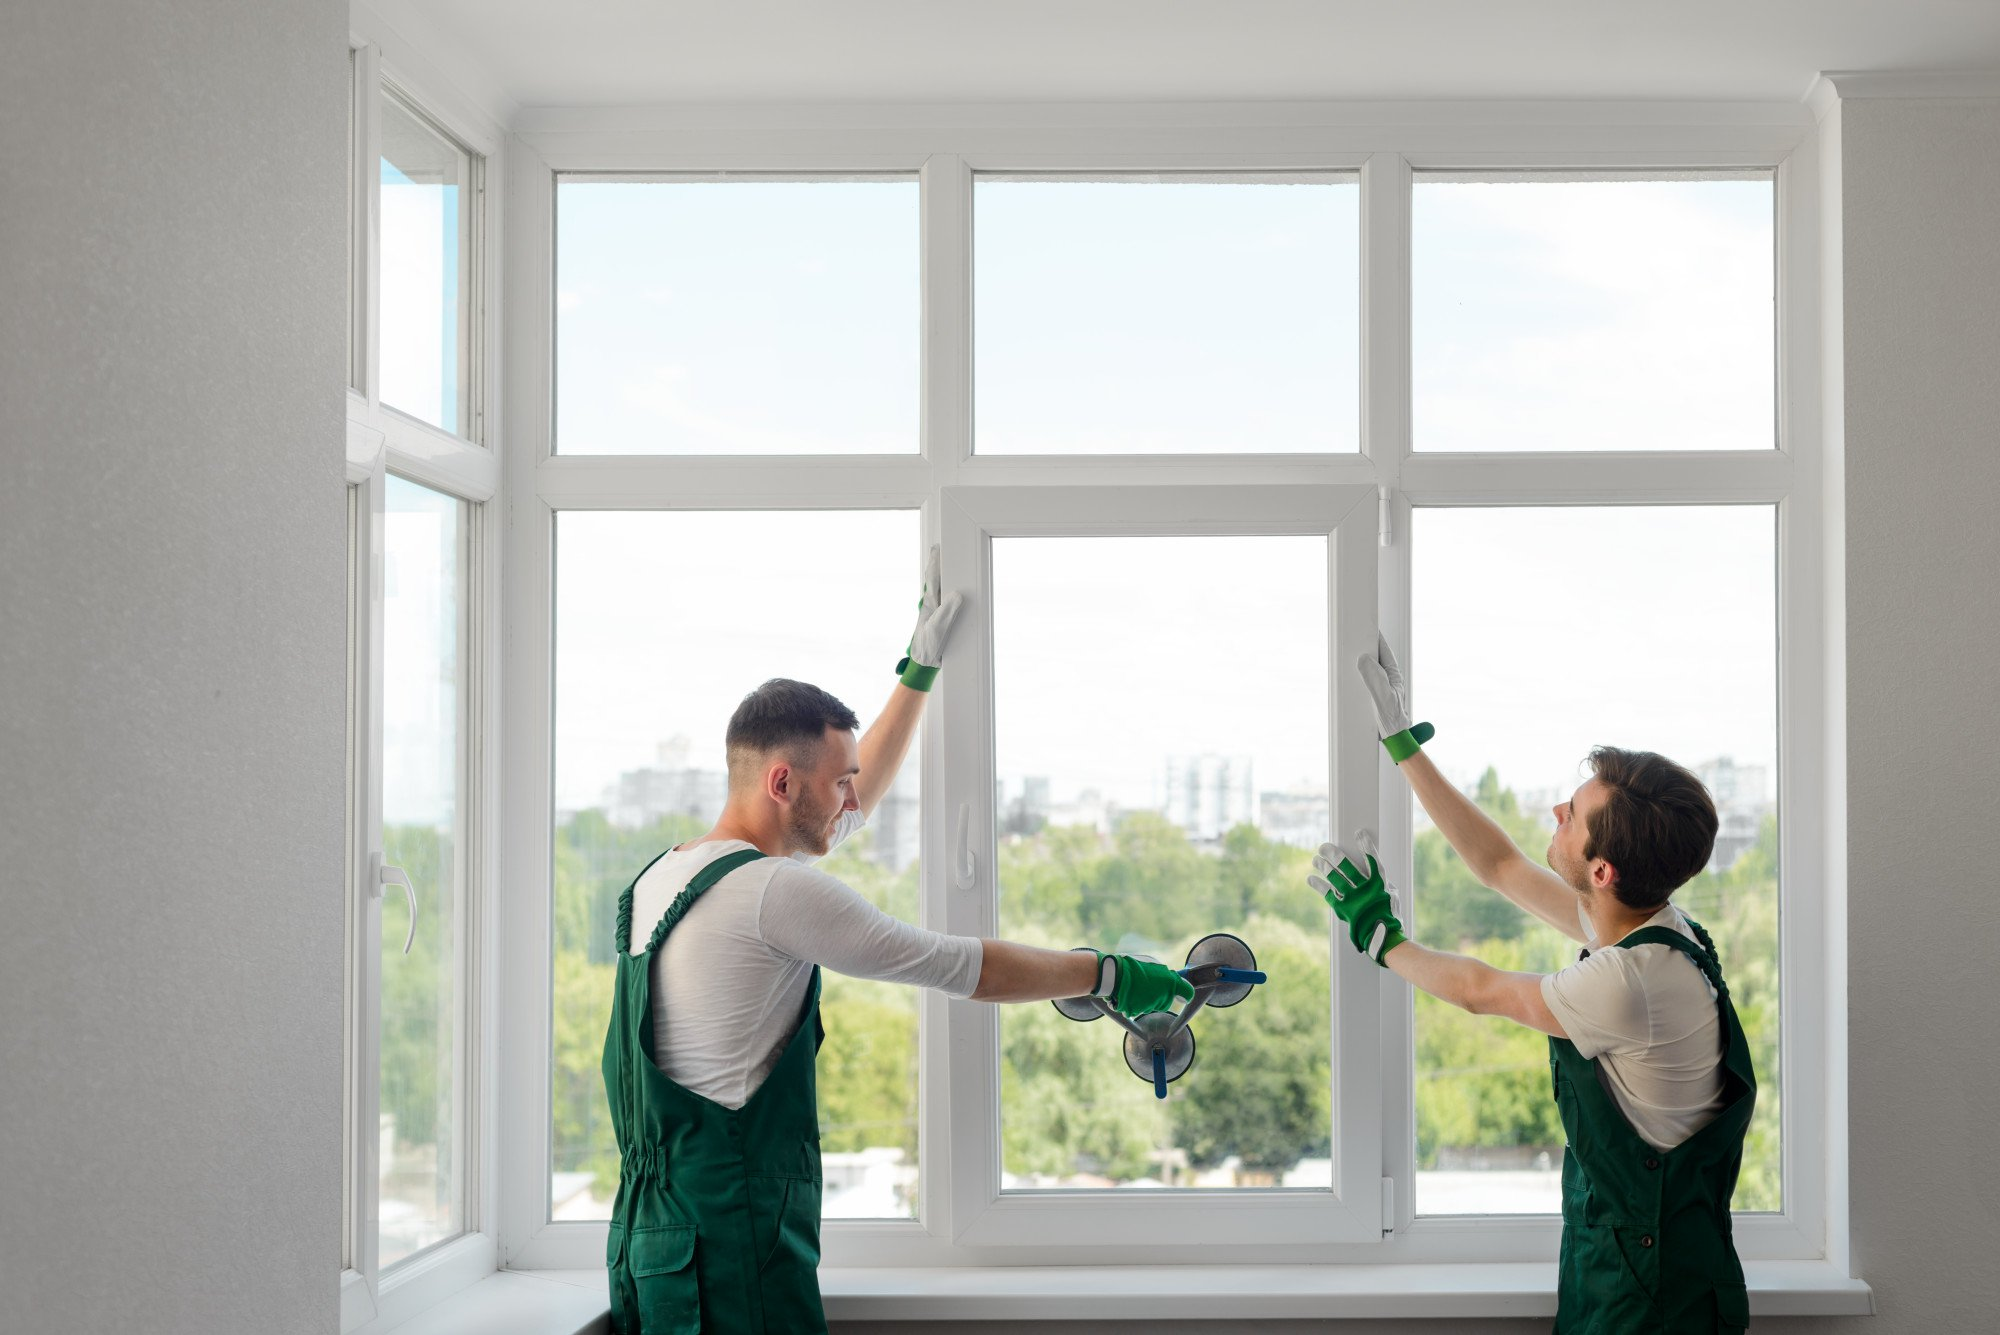 2 builders working and replacing windows for a house in Los Angeles, CA